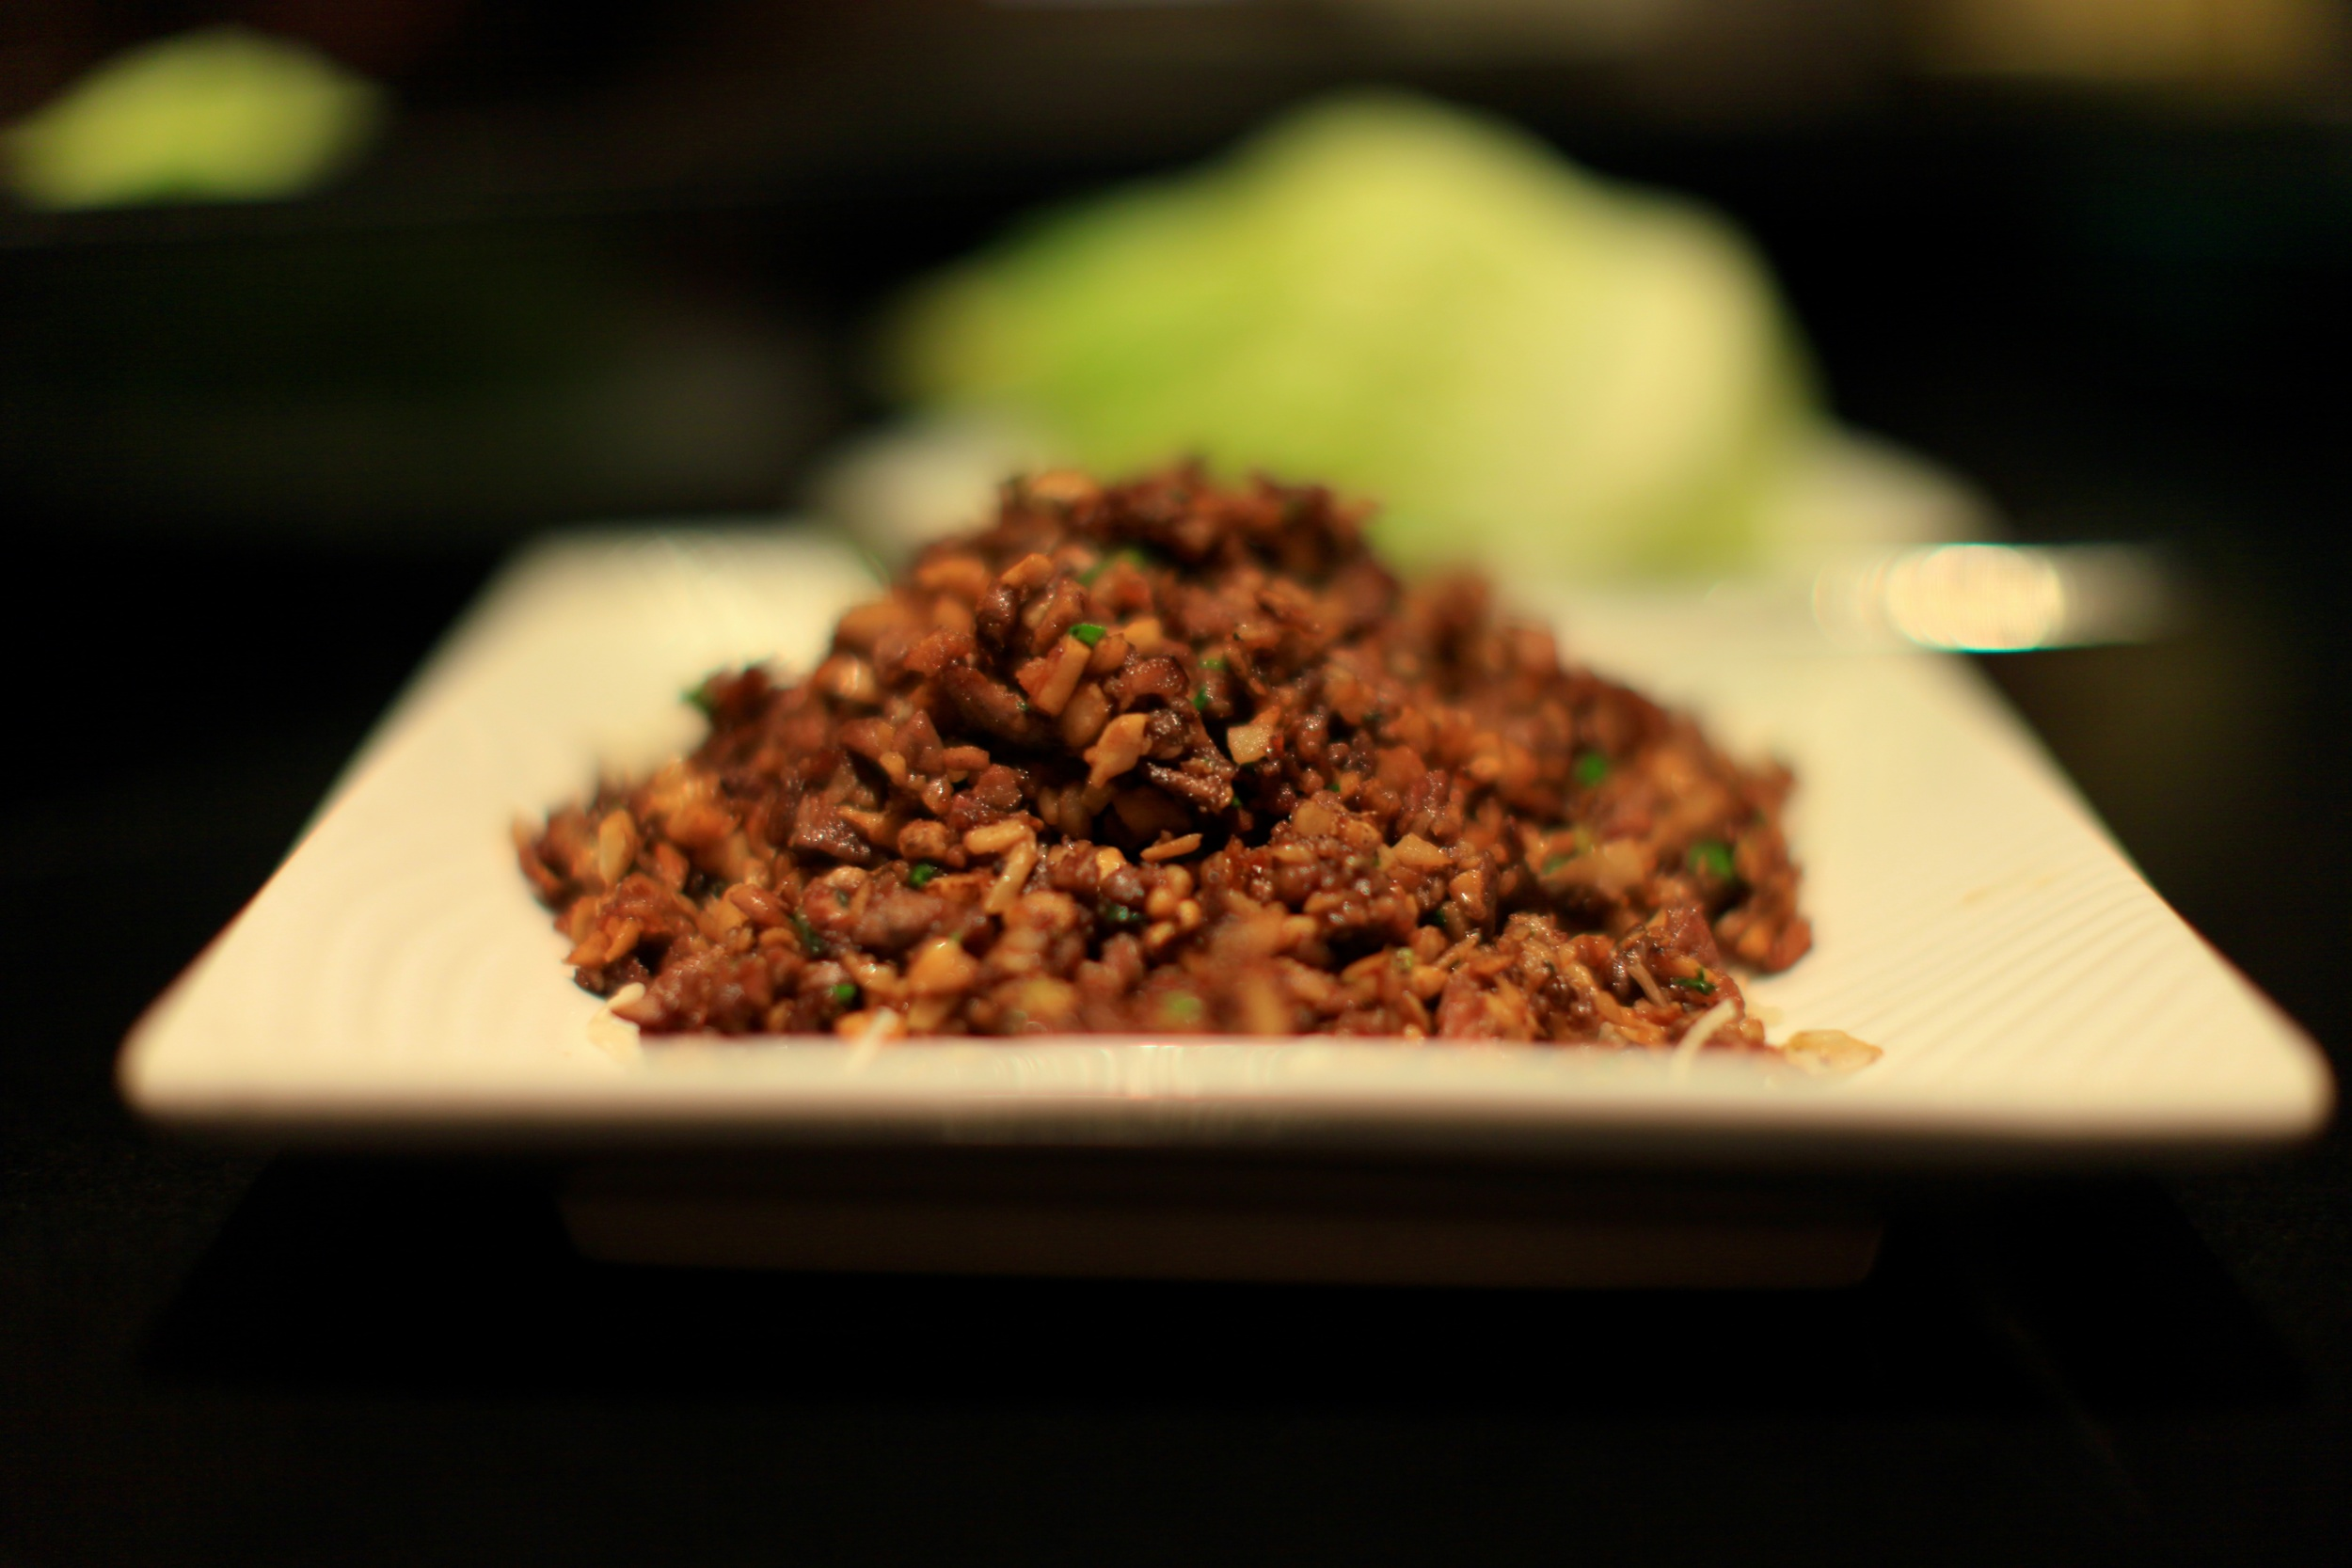 Second Preparation - Fried duck meat served with lettuce wraps